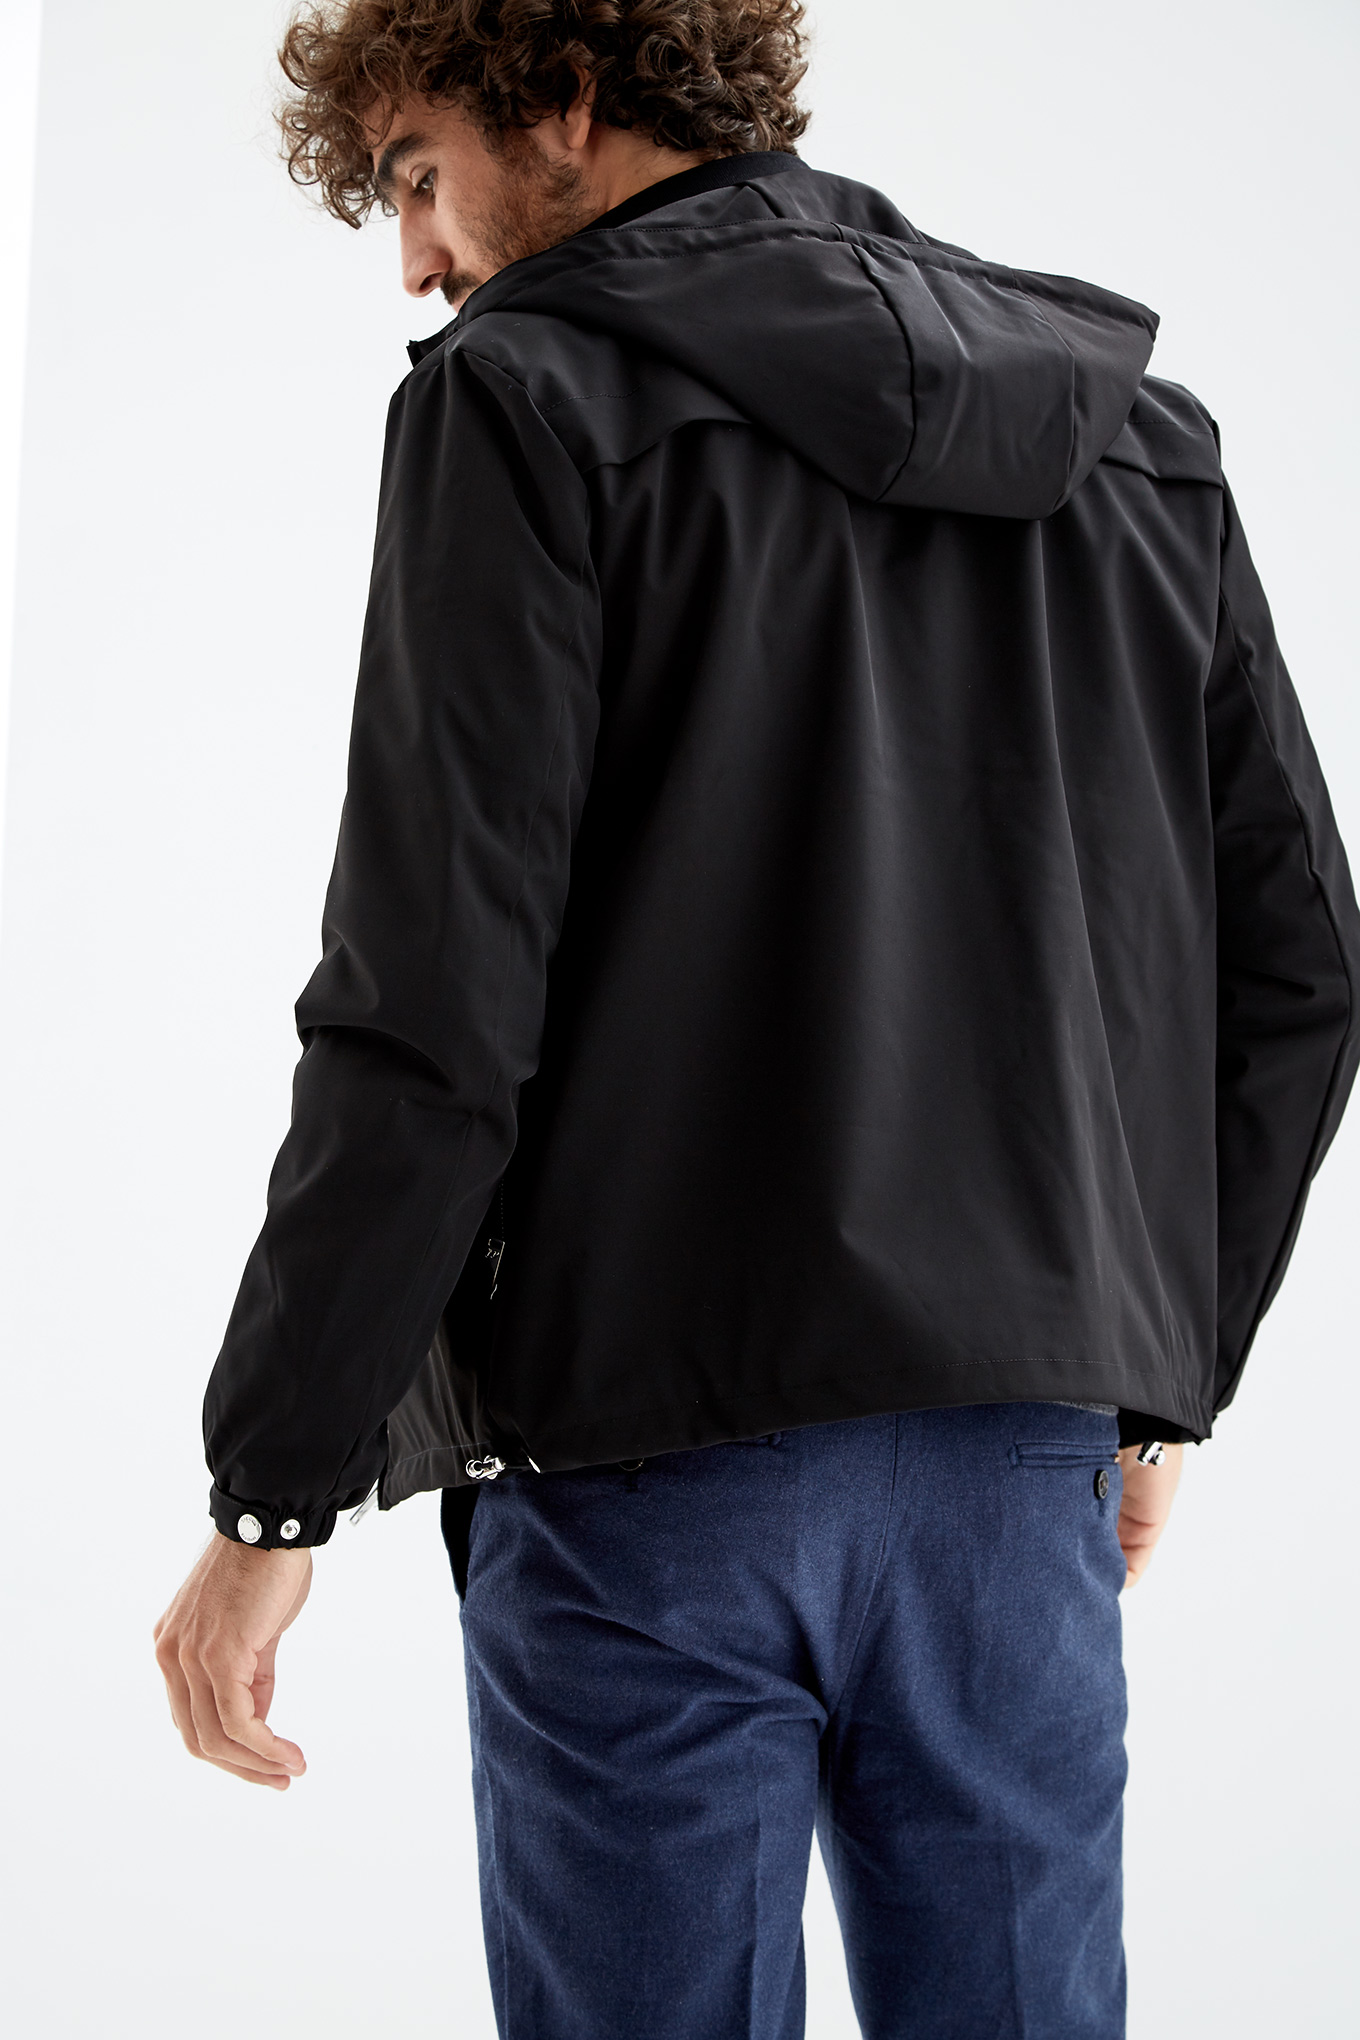 Jacket Black Casual Man